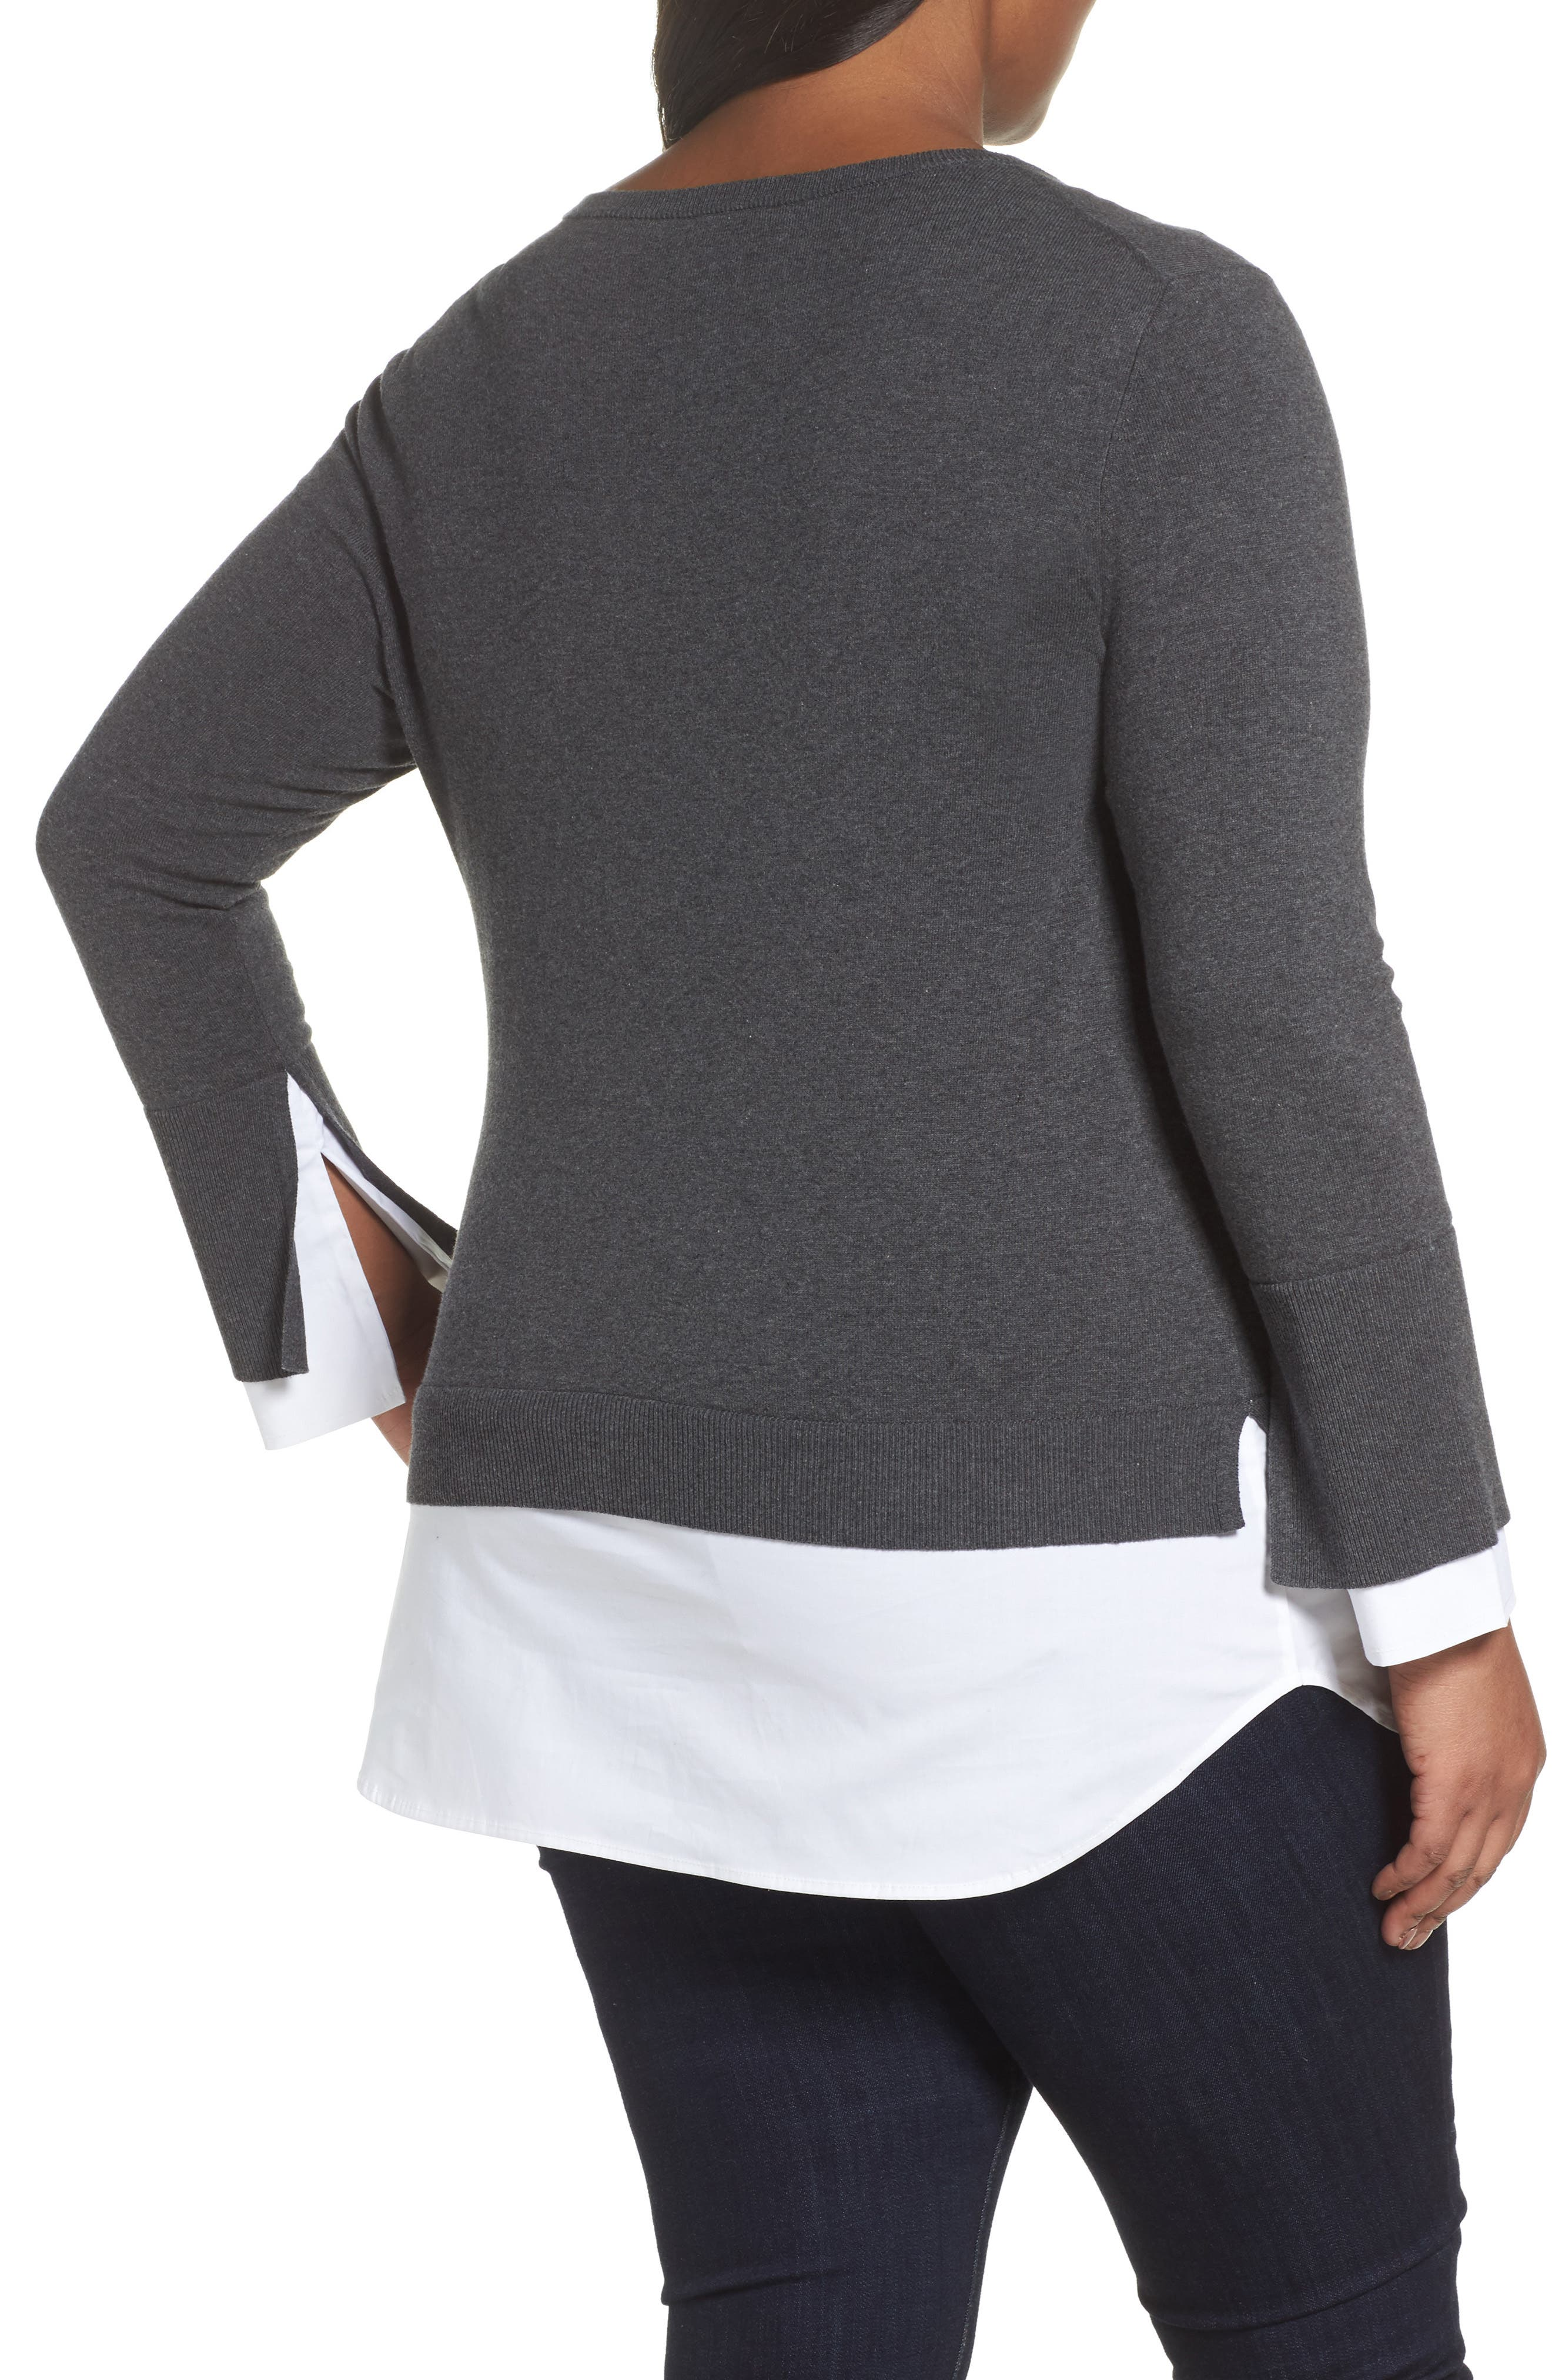 Alternate Image 2  - Vince Camuto Layered Look Sweater (Plus Size)